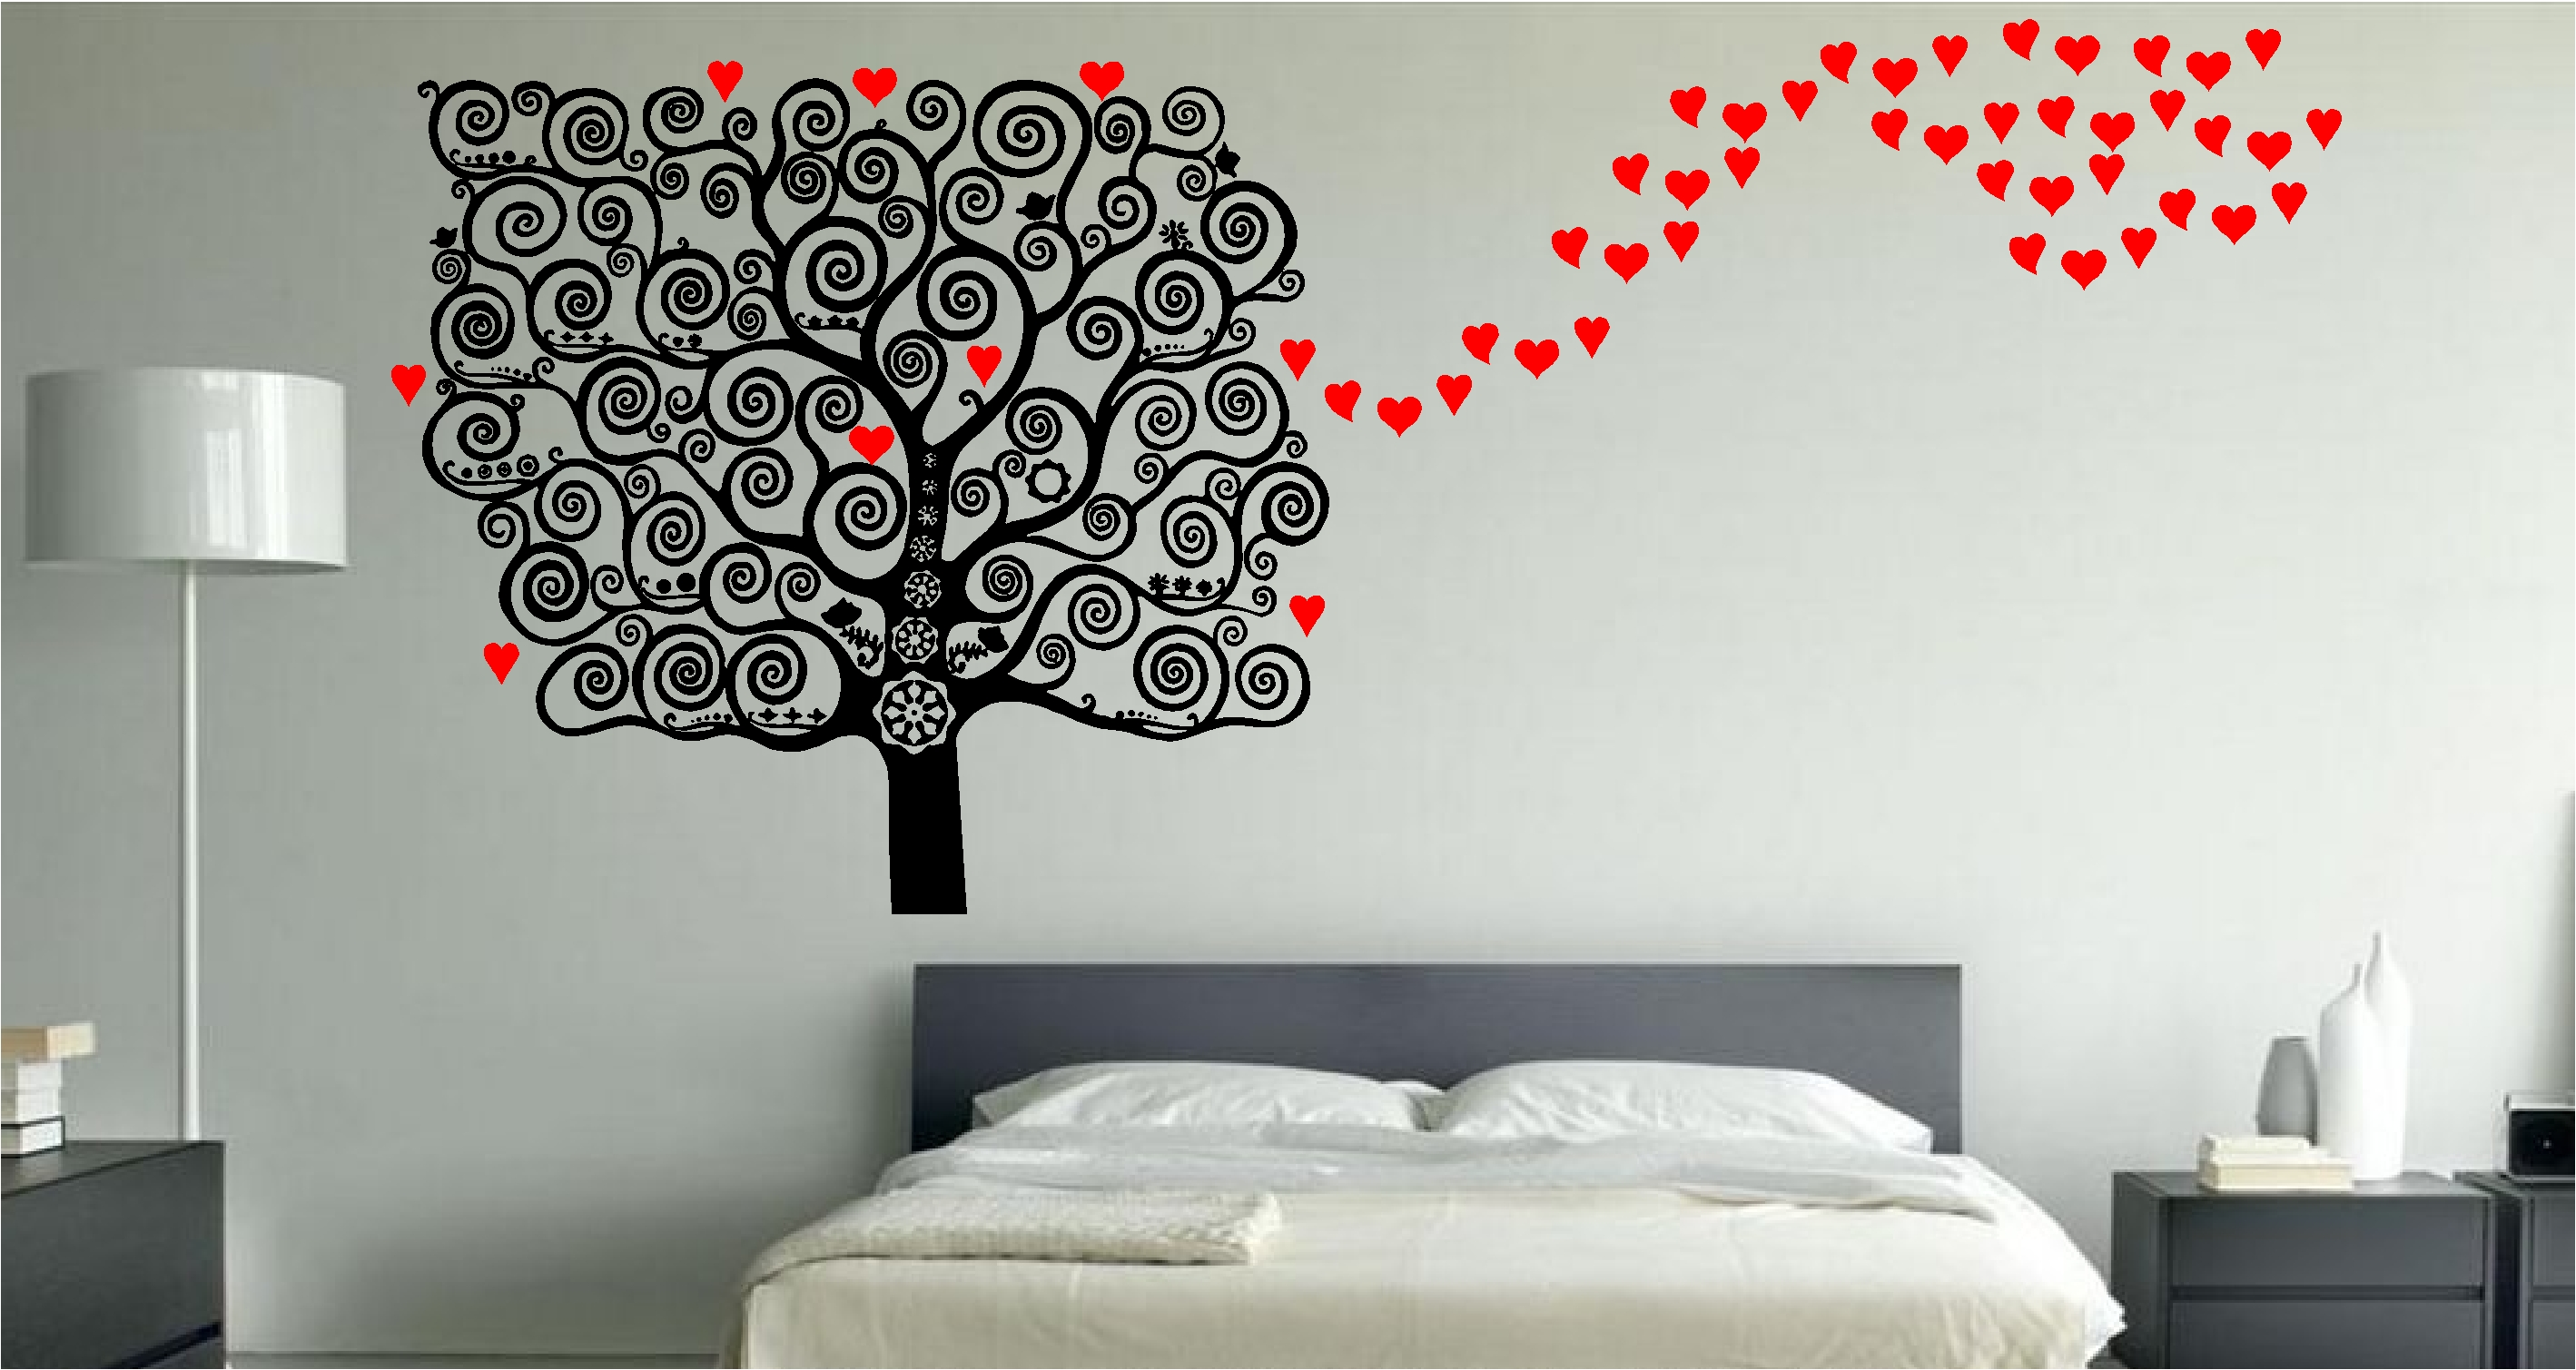 Best Stunning Love Heart Tree Wall Art Sticker Decal Bedroom This Month